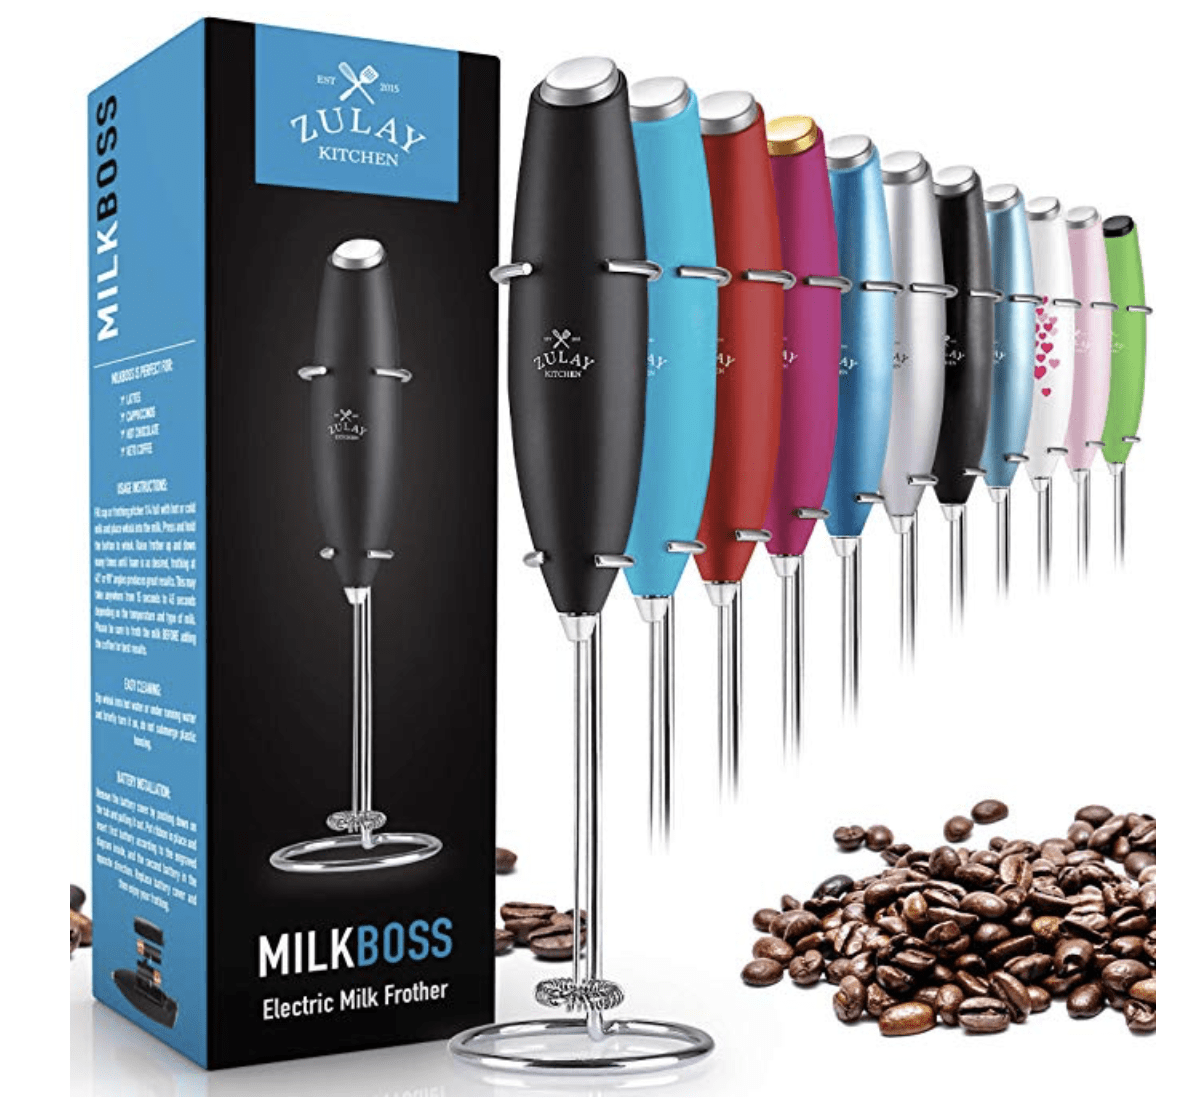 This milk frother that lets you make oat milk latte's at home